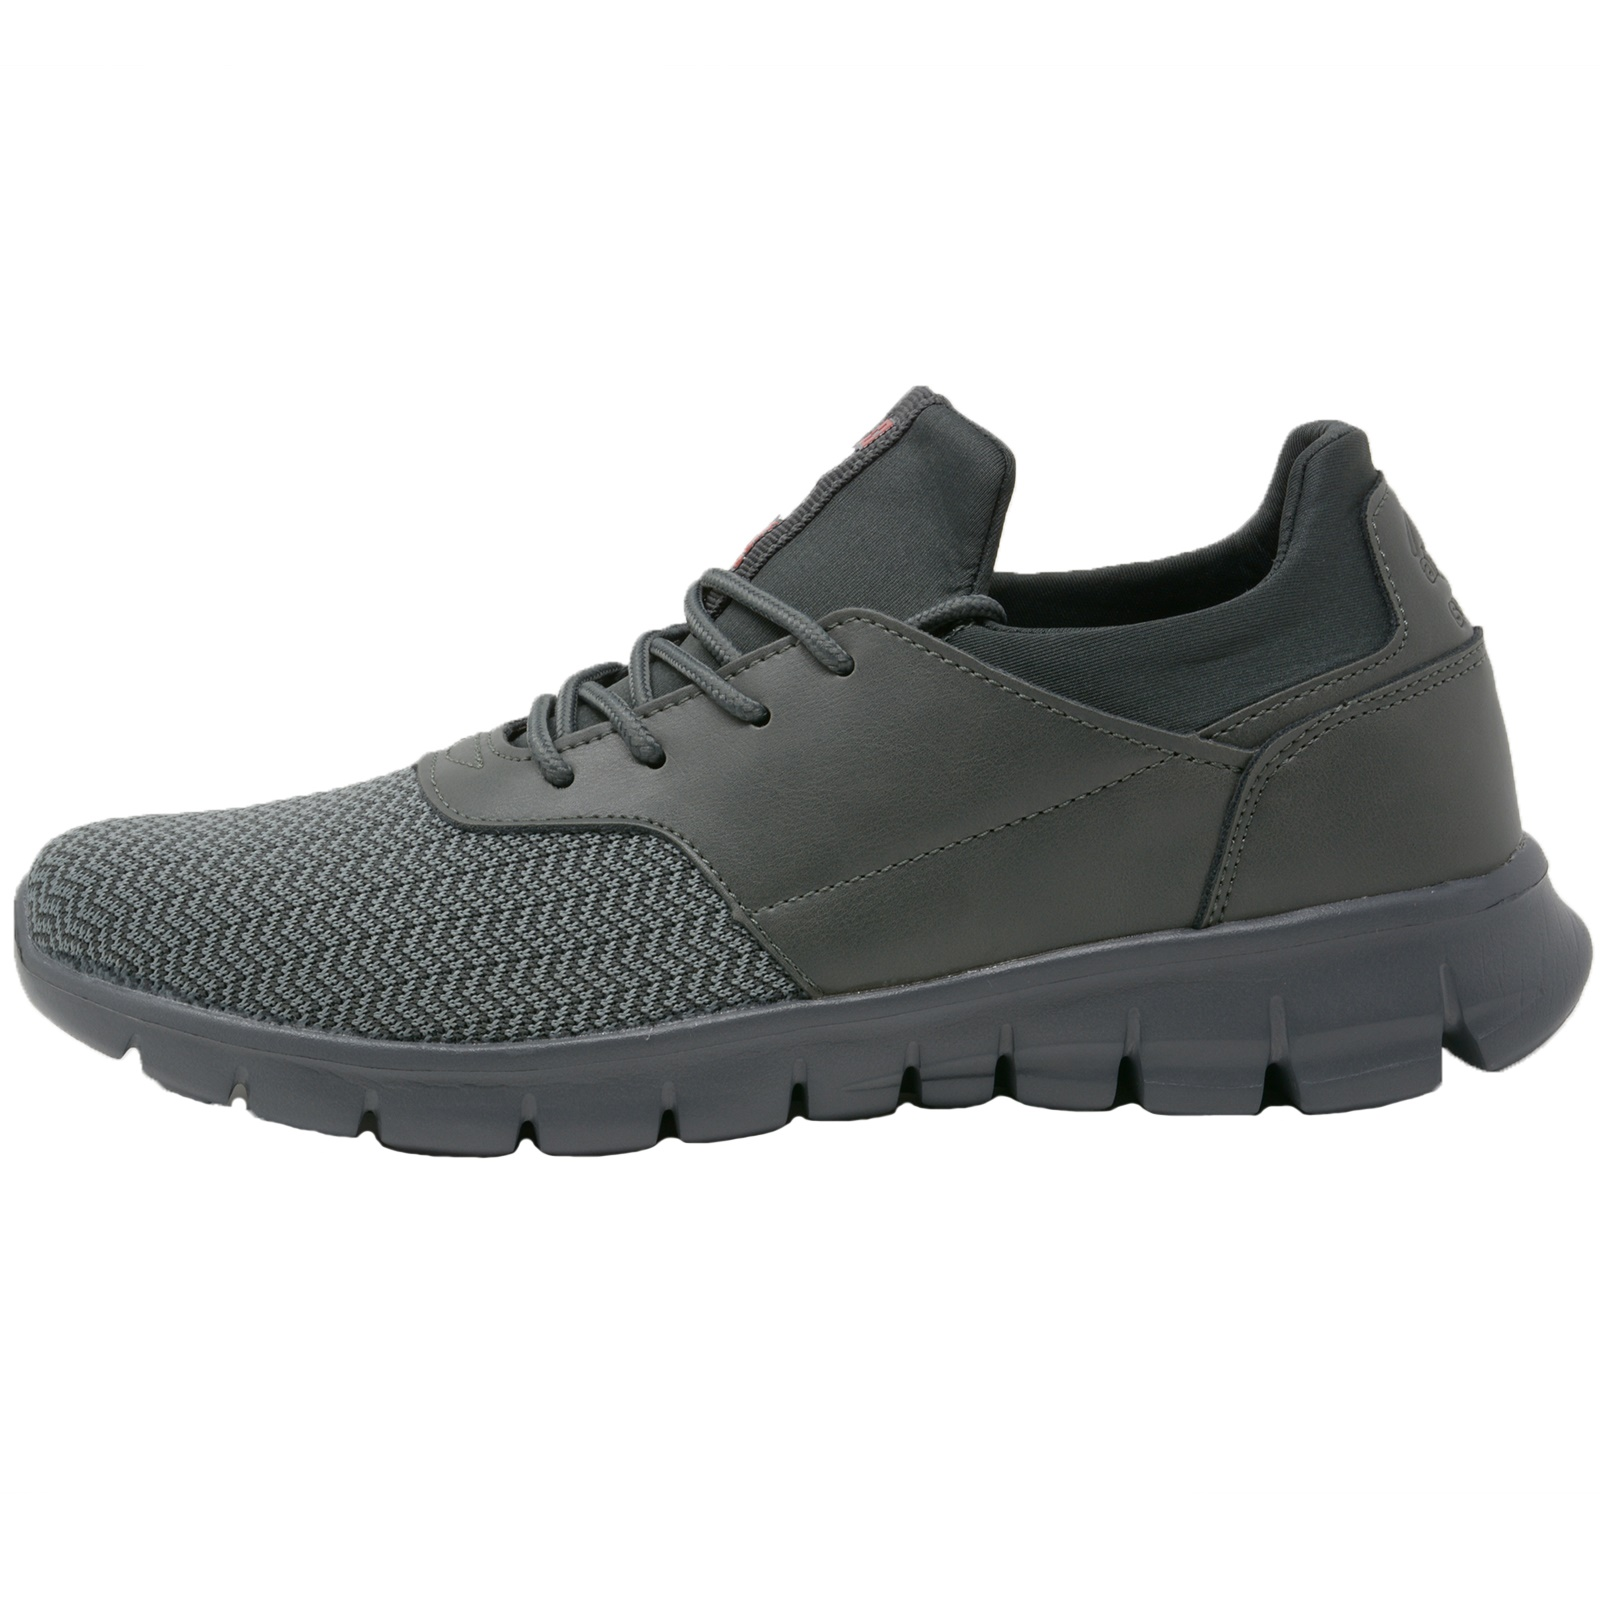 Alpine-Swiss-Leo-Men-Sneakers-Flex-Knit-Tennis-Shoes-Casual-Athletic-Lightweight thumbnail 18